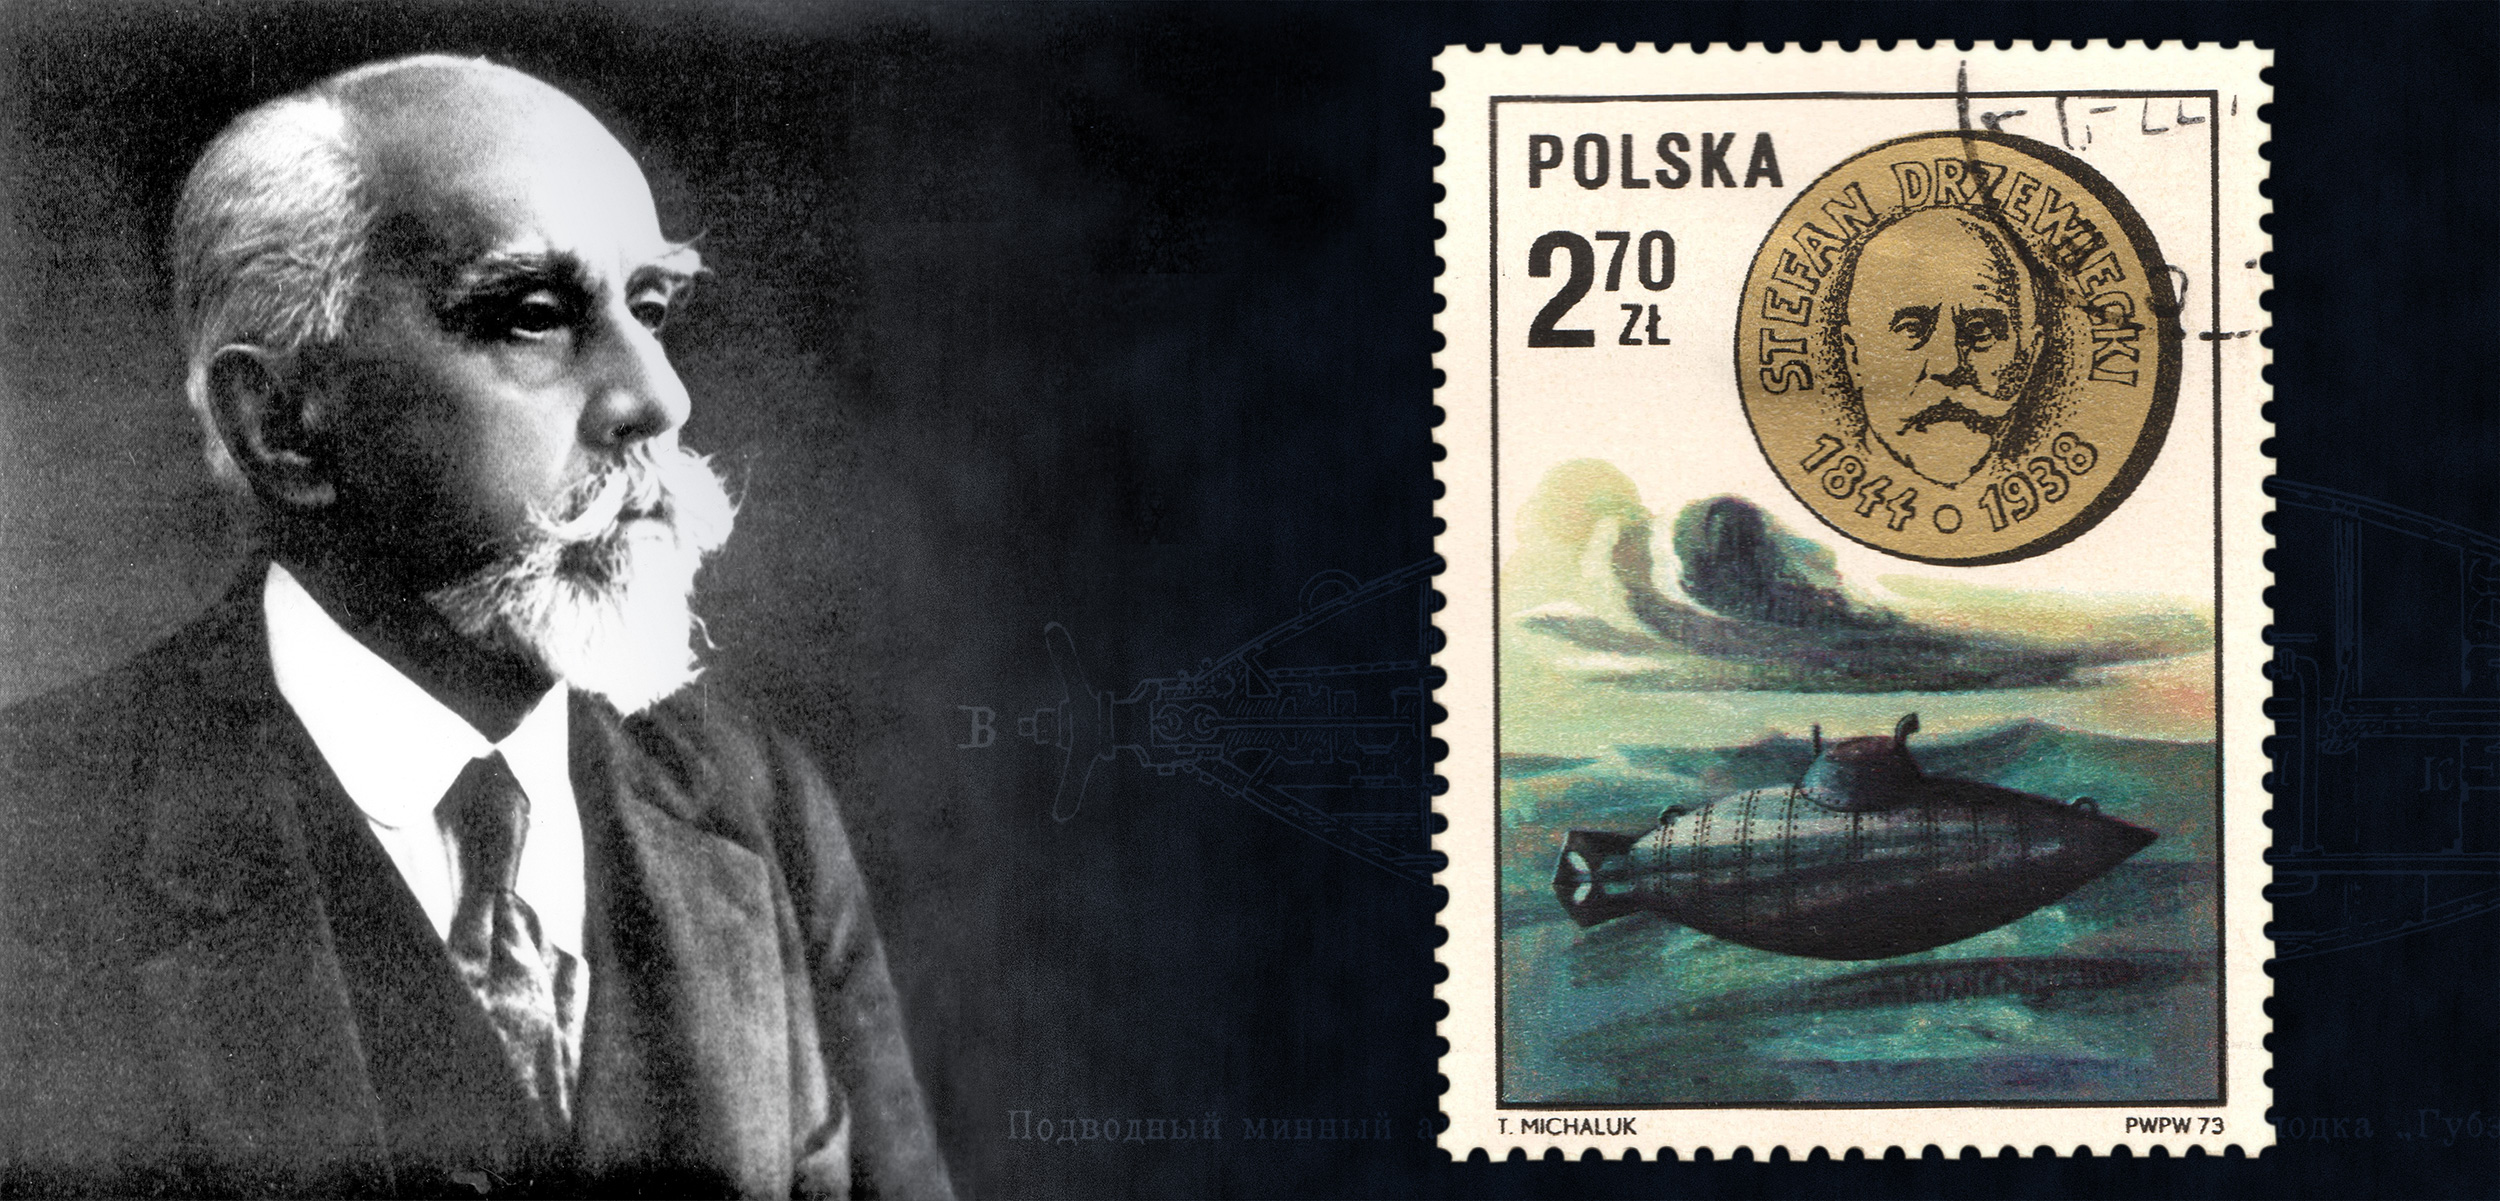 It ran on pedal-power, but Polish inventor, Stefan Drzewiecki, designed the first mass-produced submarine.